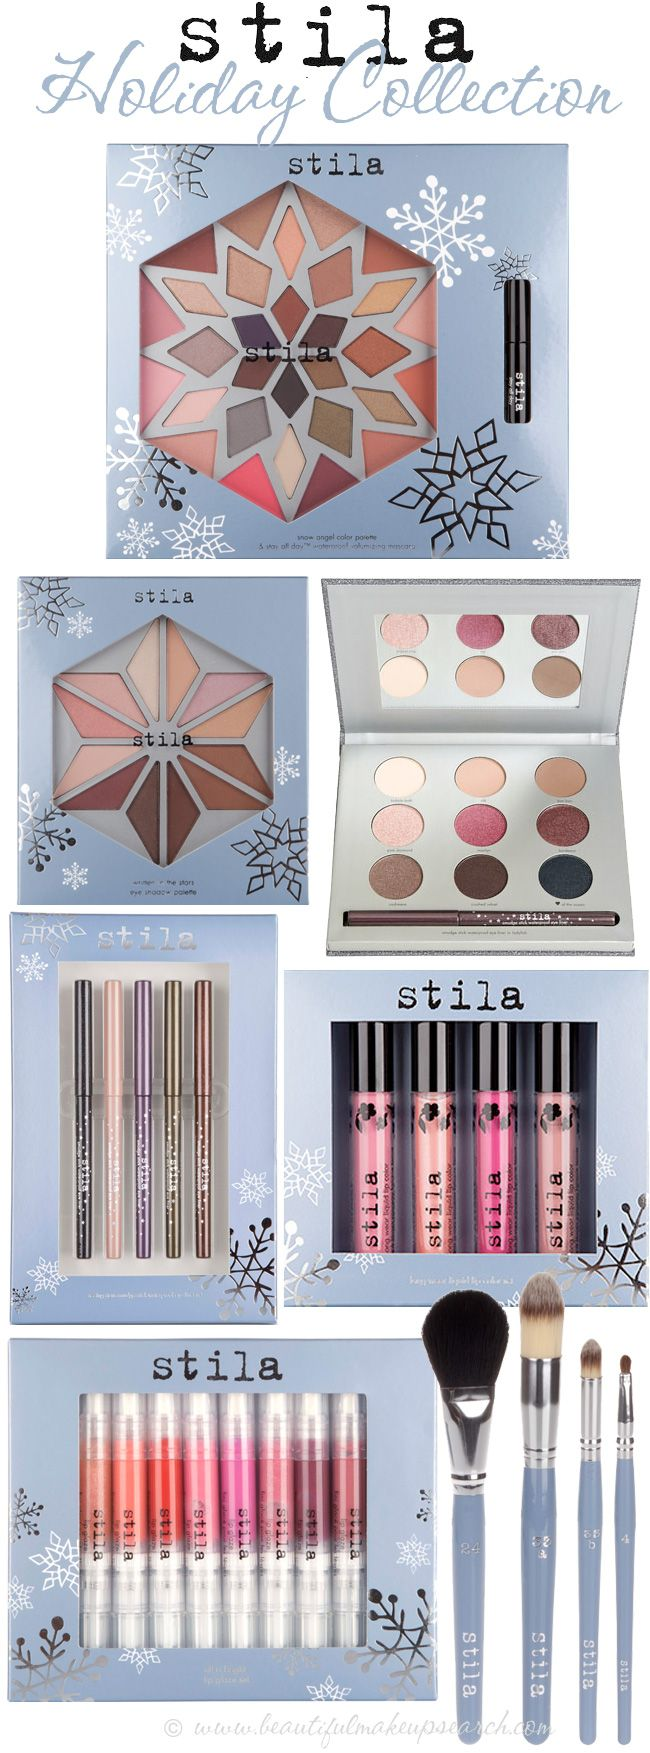 #Stila #Holiday Collection 2012